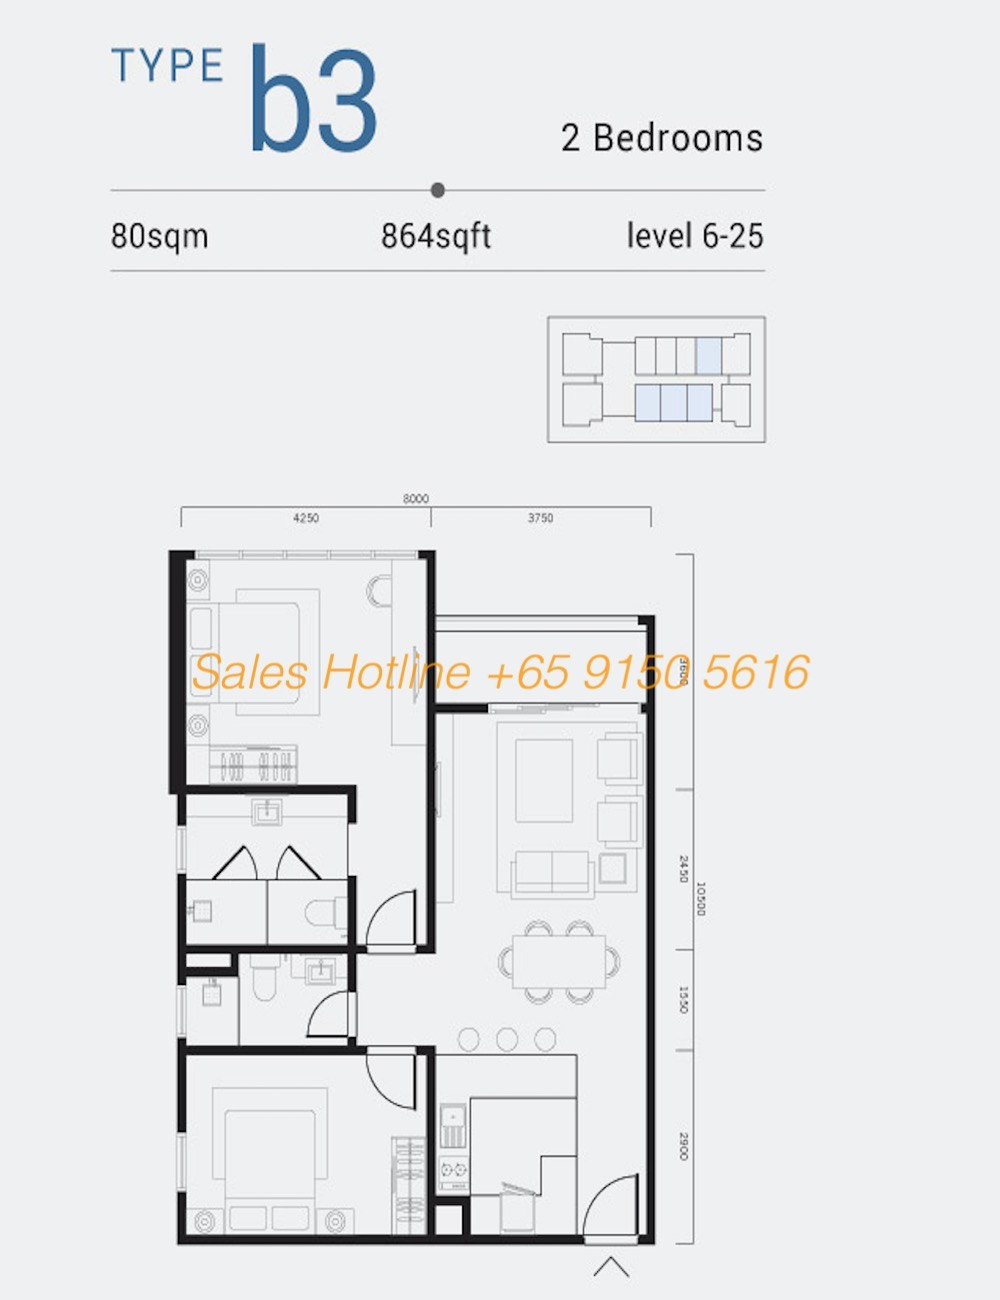 Shama Medini - 2 Bedroom Type B3